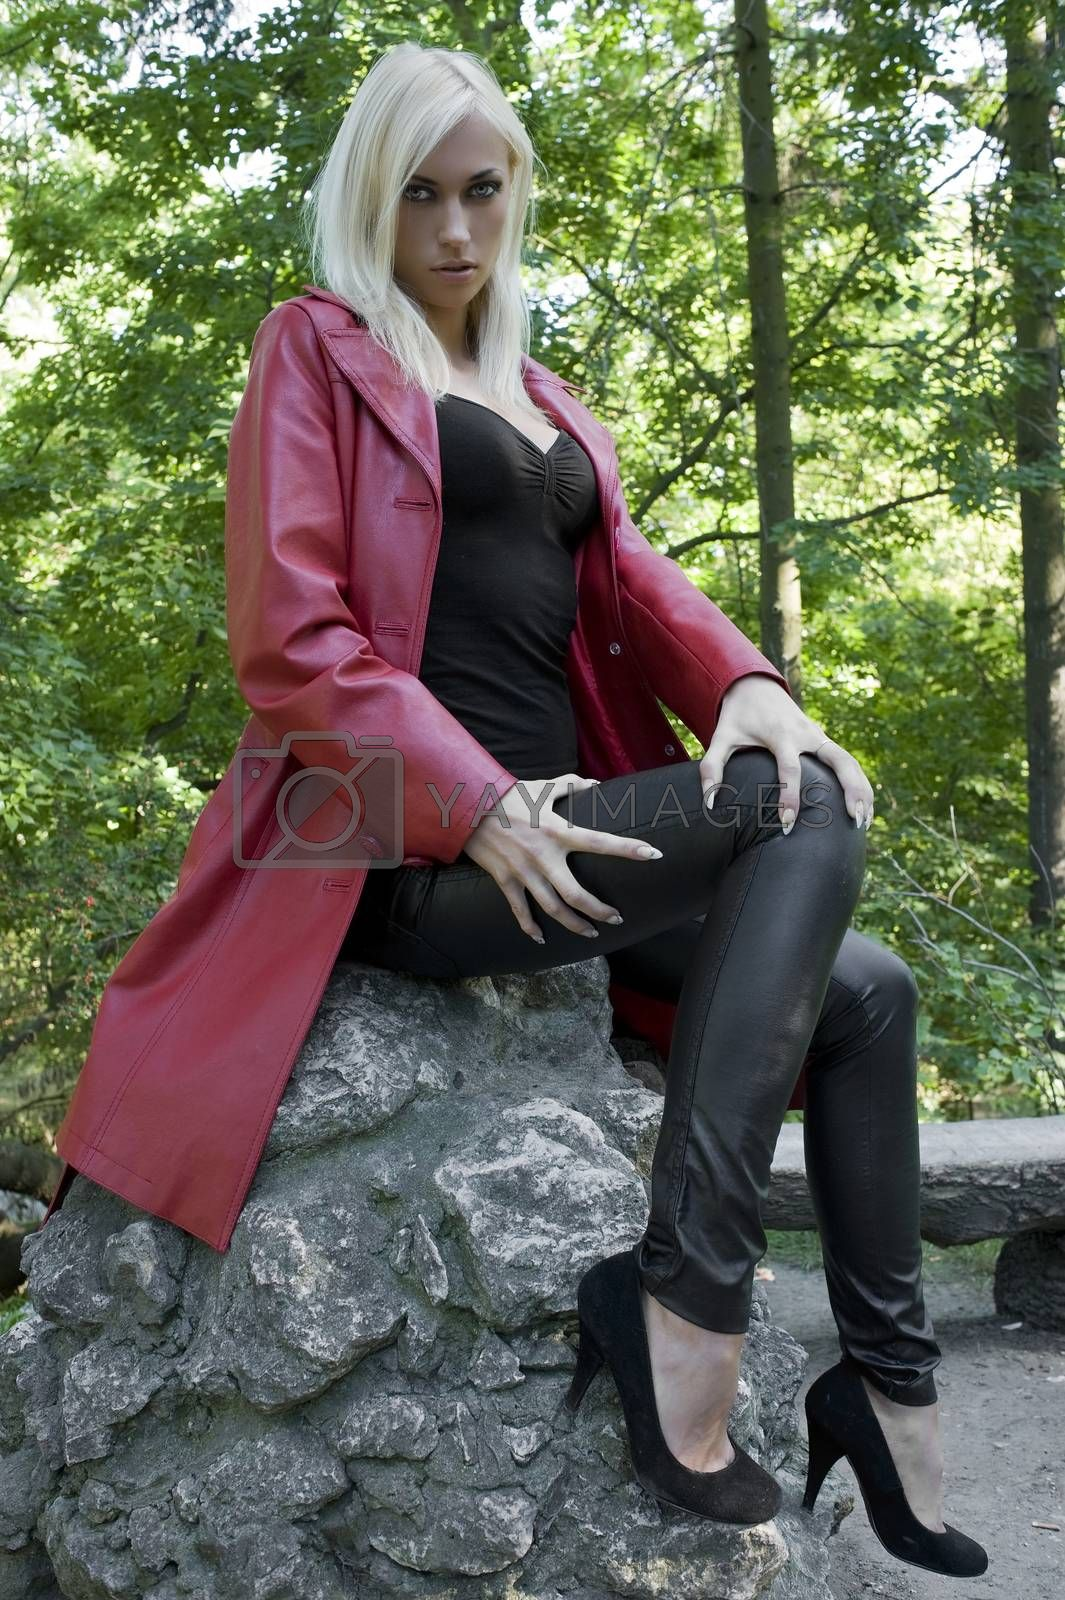 Royalty free image of sensual girl outdoor in park by fotoCD